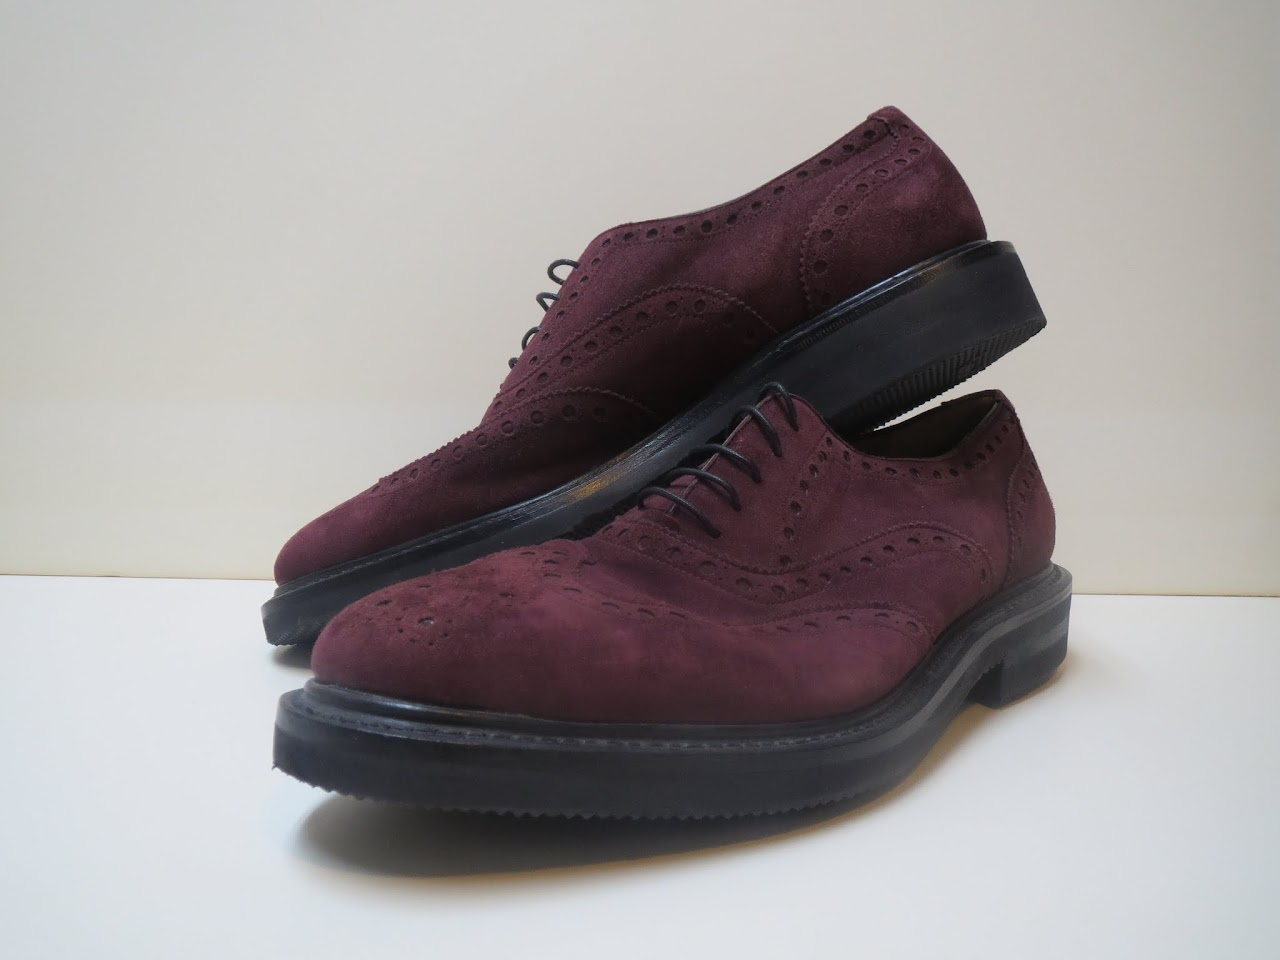 Salvatore Ferragamo Brogue Lace Ups